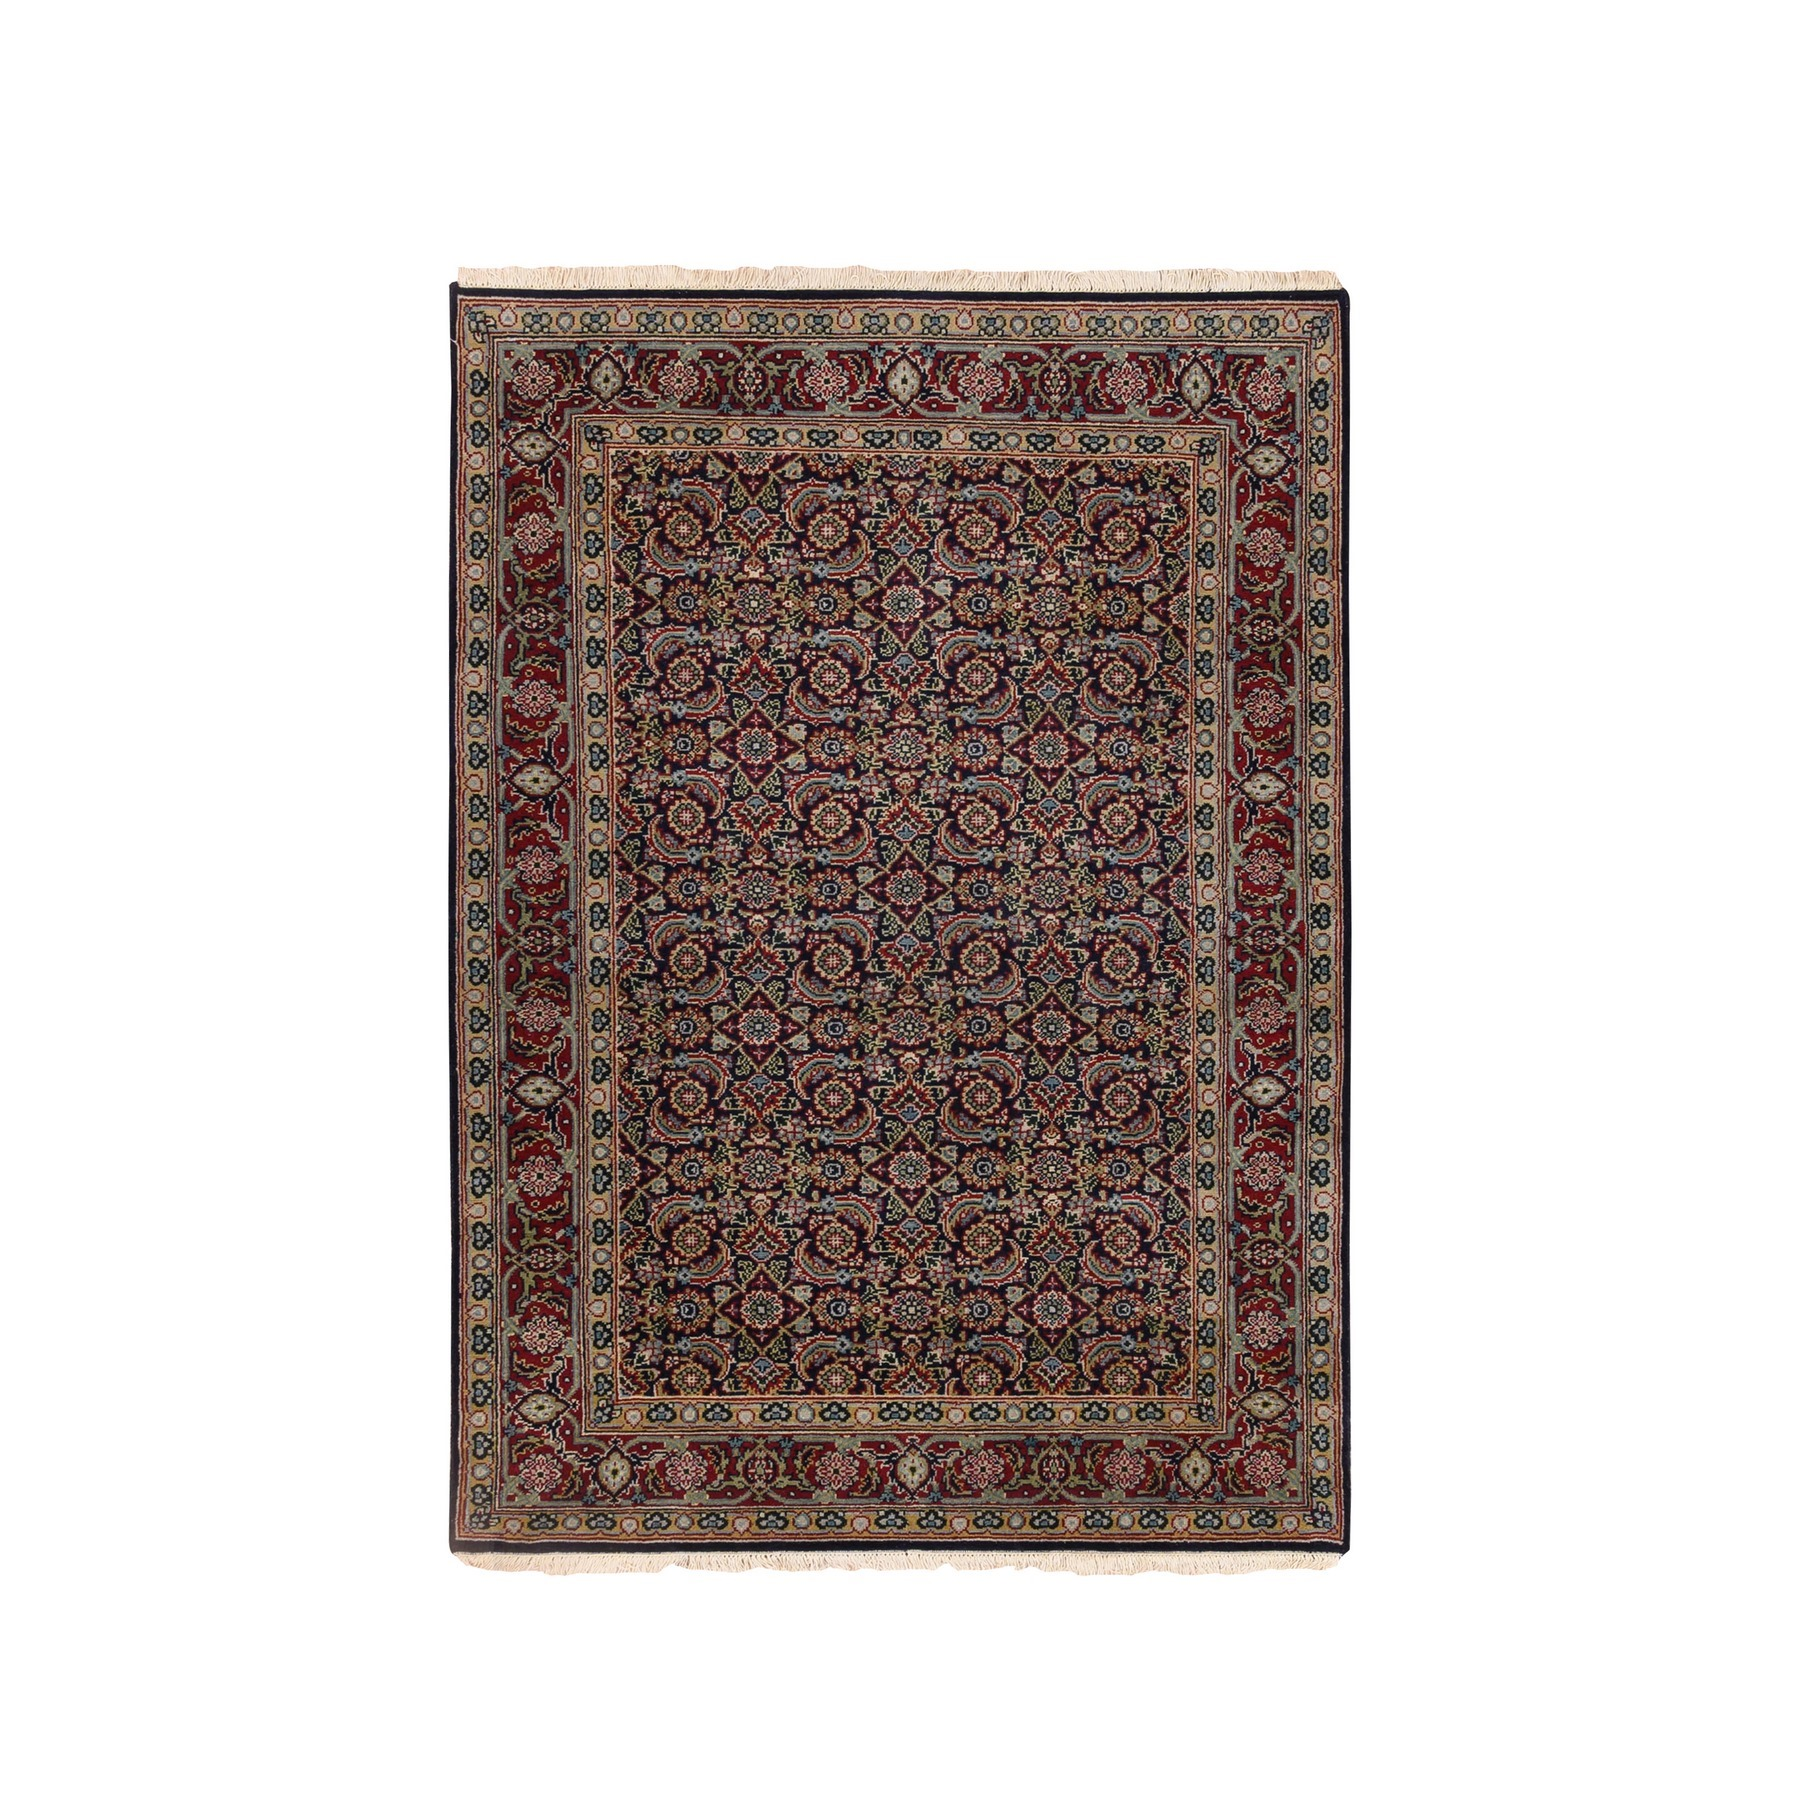 Pirniakan Collection Hand Knotted Blue Rug No: 1124688